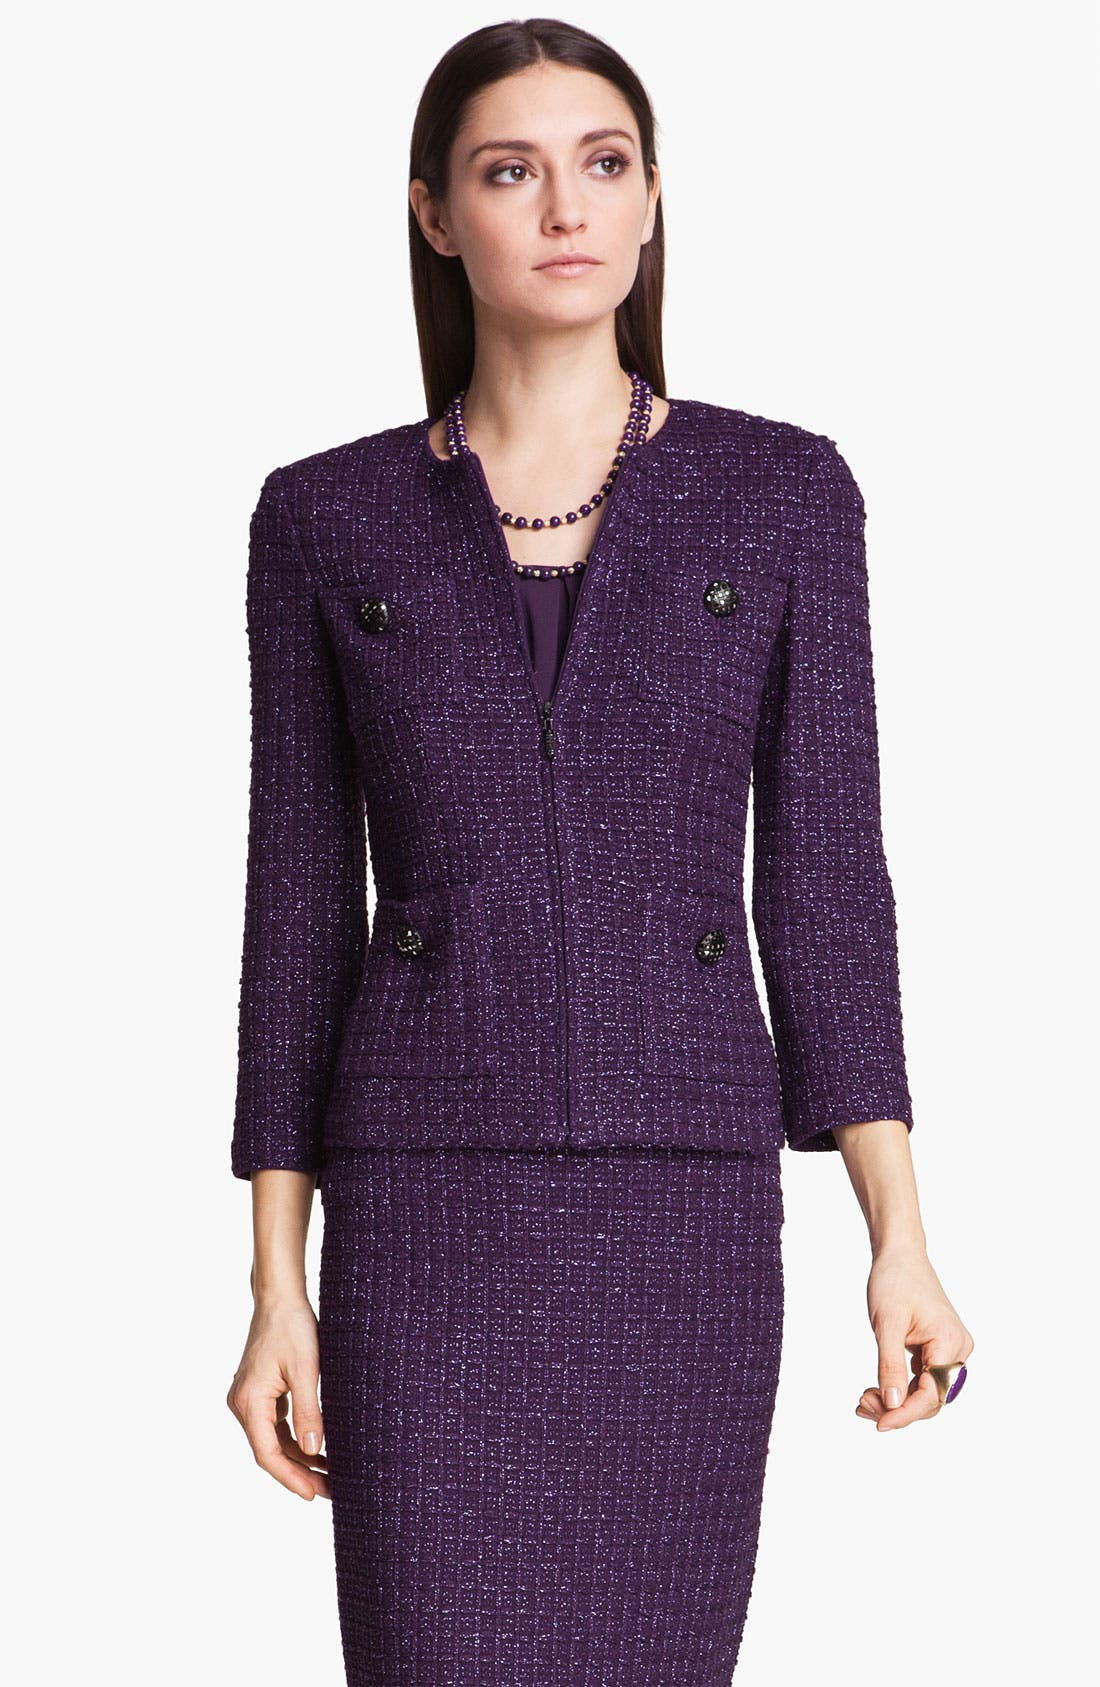 Alternate Image 1 Selected - St. John Collection Shimmer Tweed Jacket